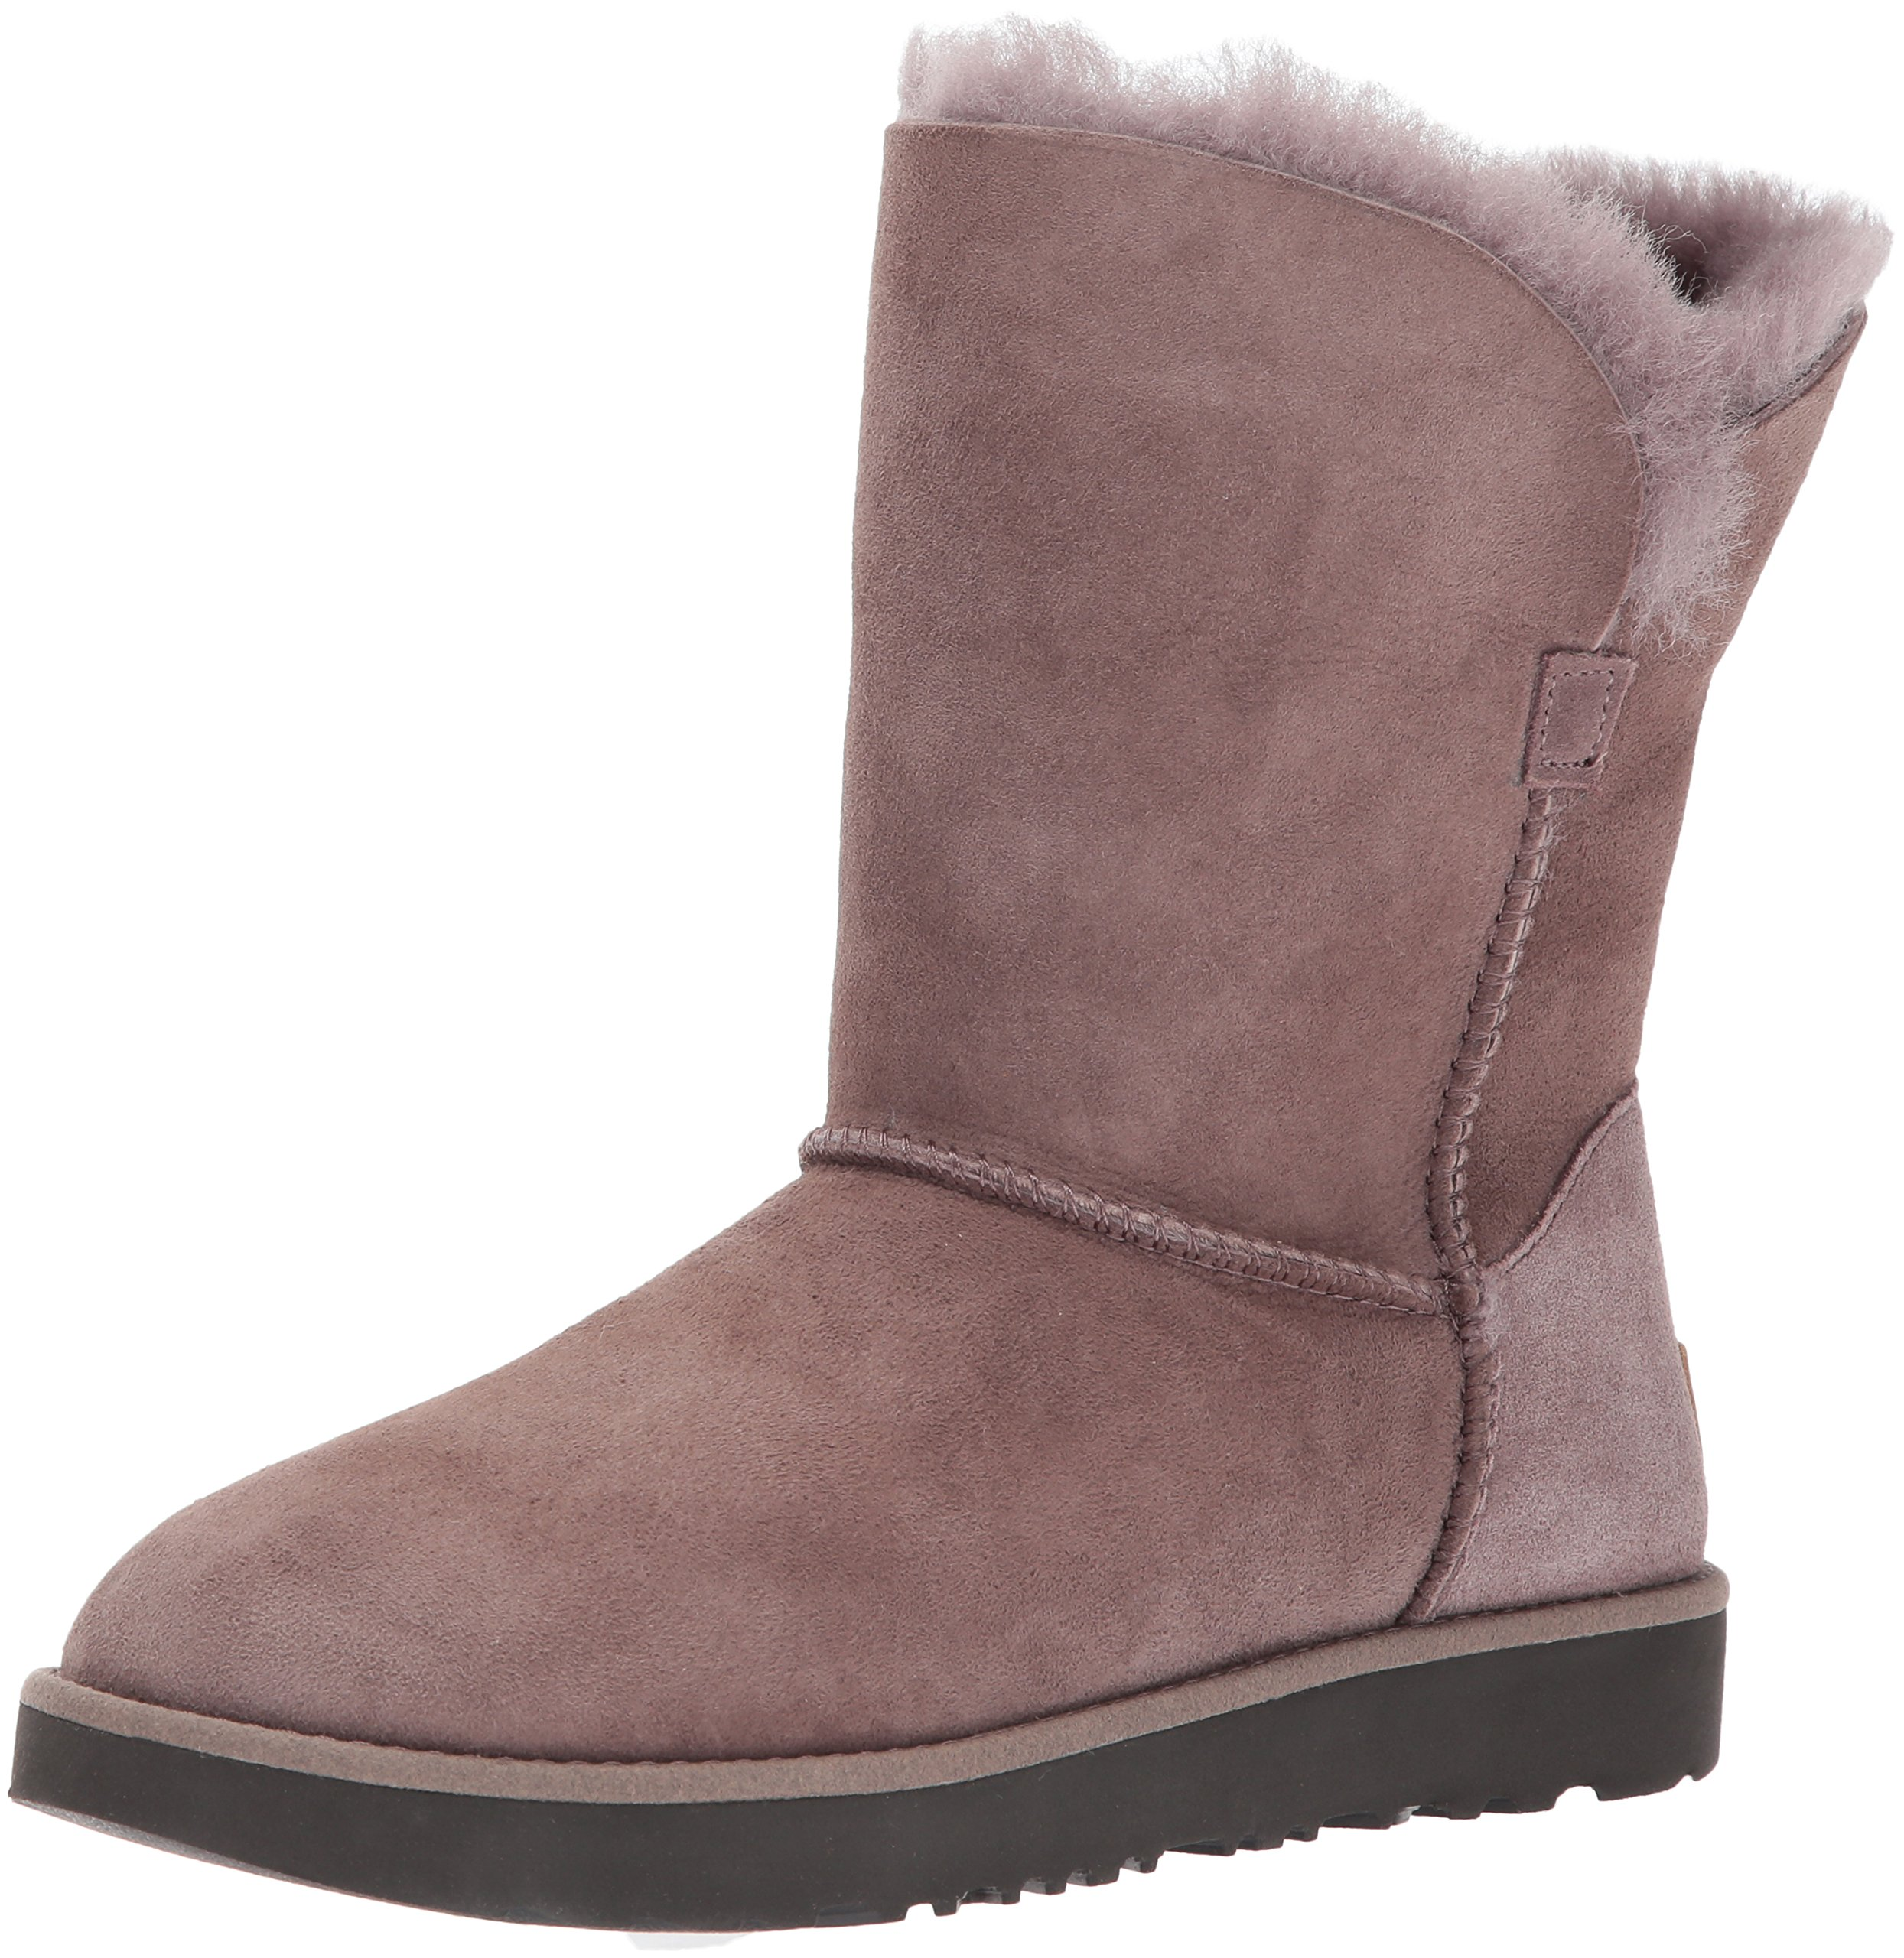 UGG Women's Classic Cuff Short Winter Boot, Stormy Grey, 8 M US by UGG